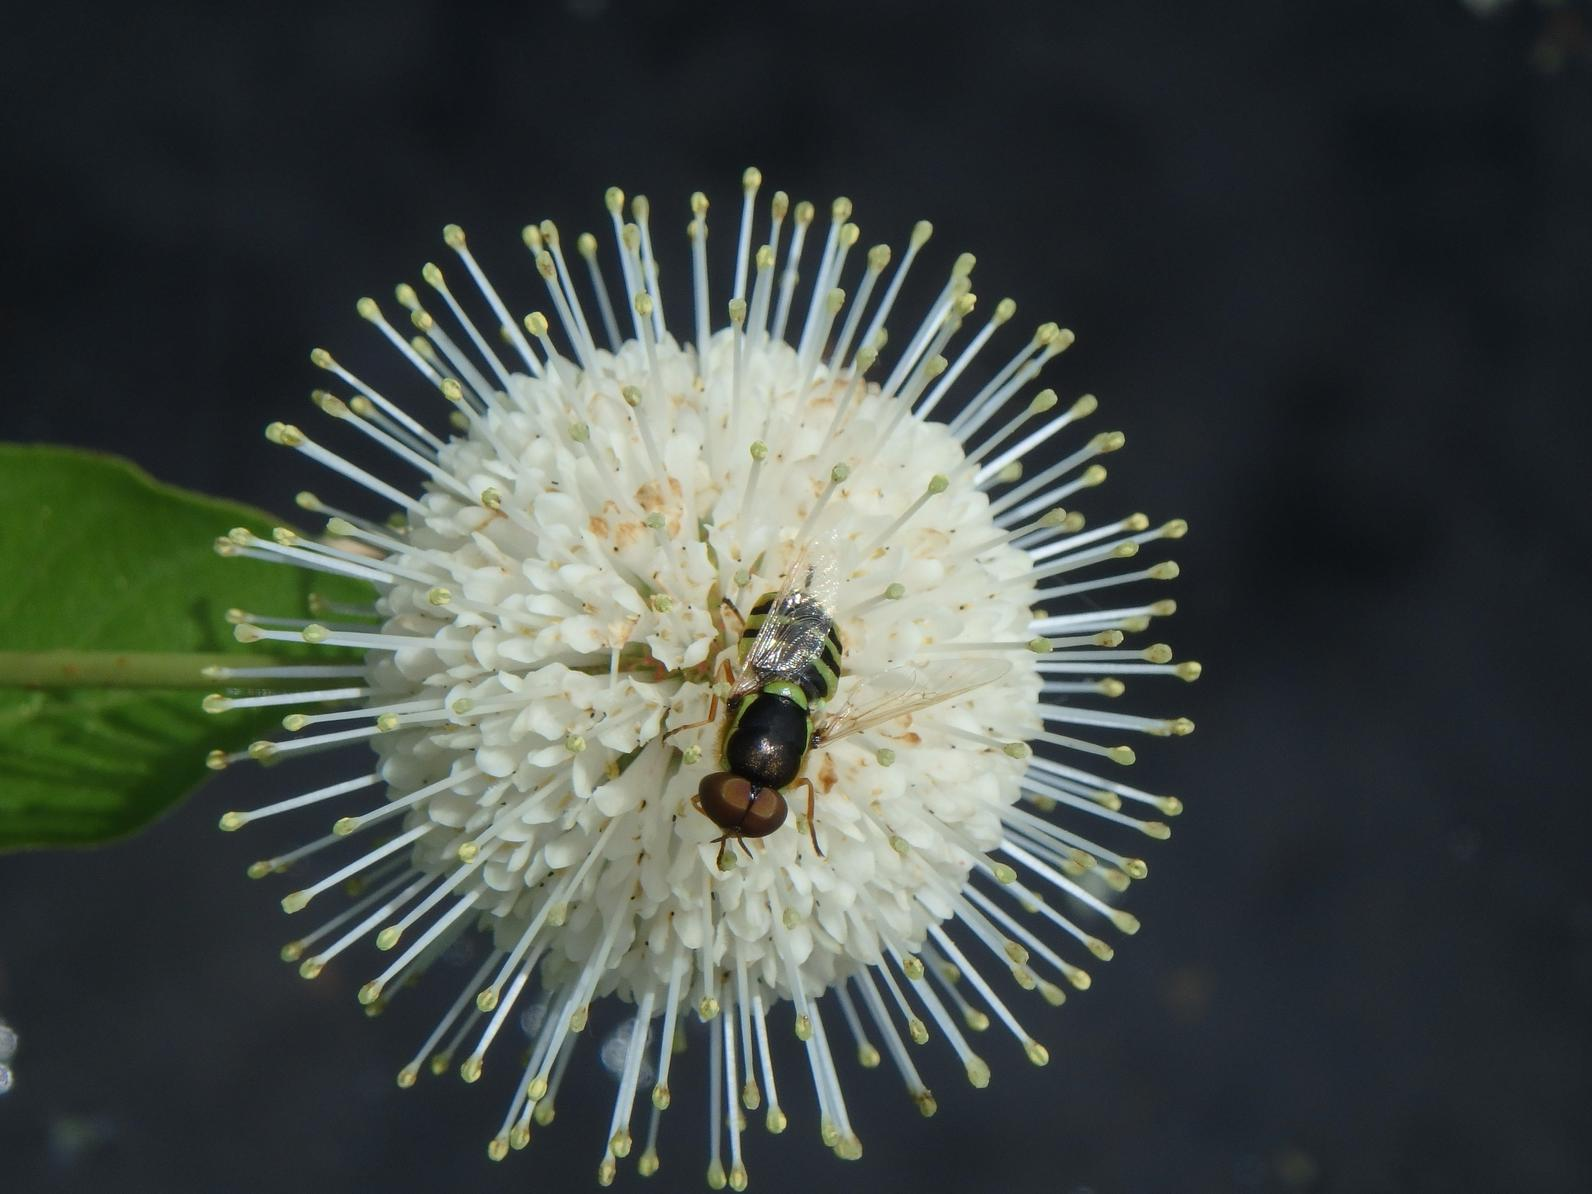 A hoverfly stops to collect buttonbush nectar from a flower in the marsh restoration plot.